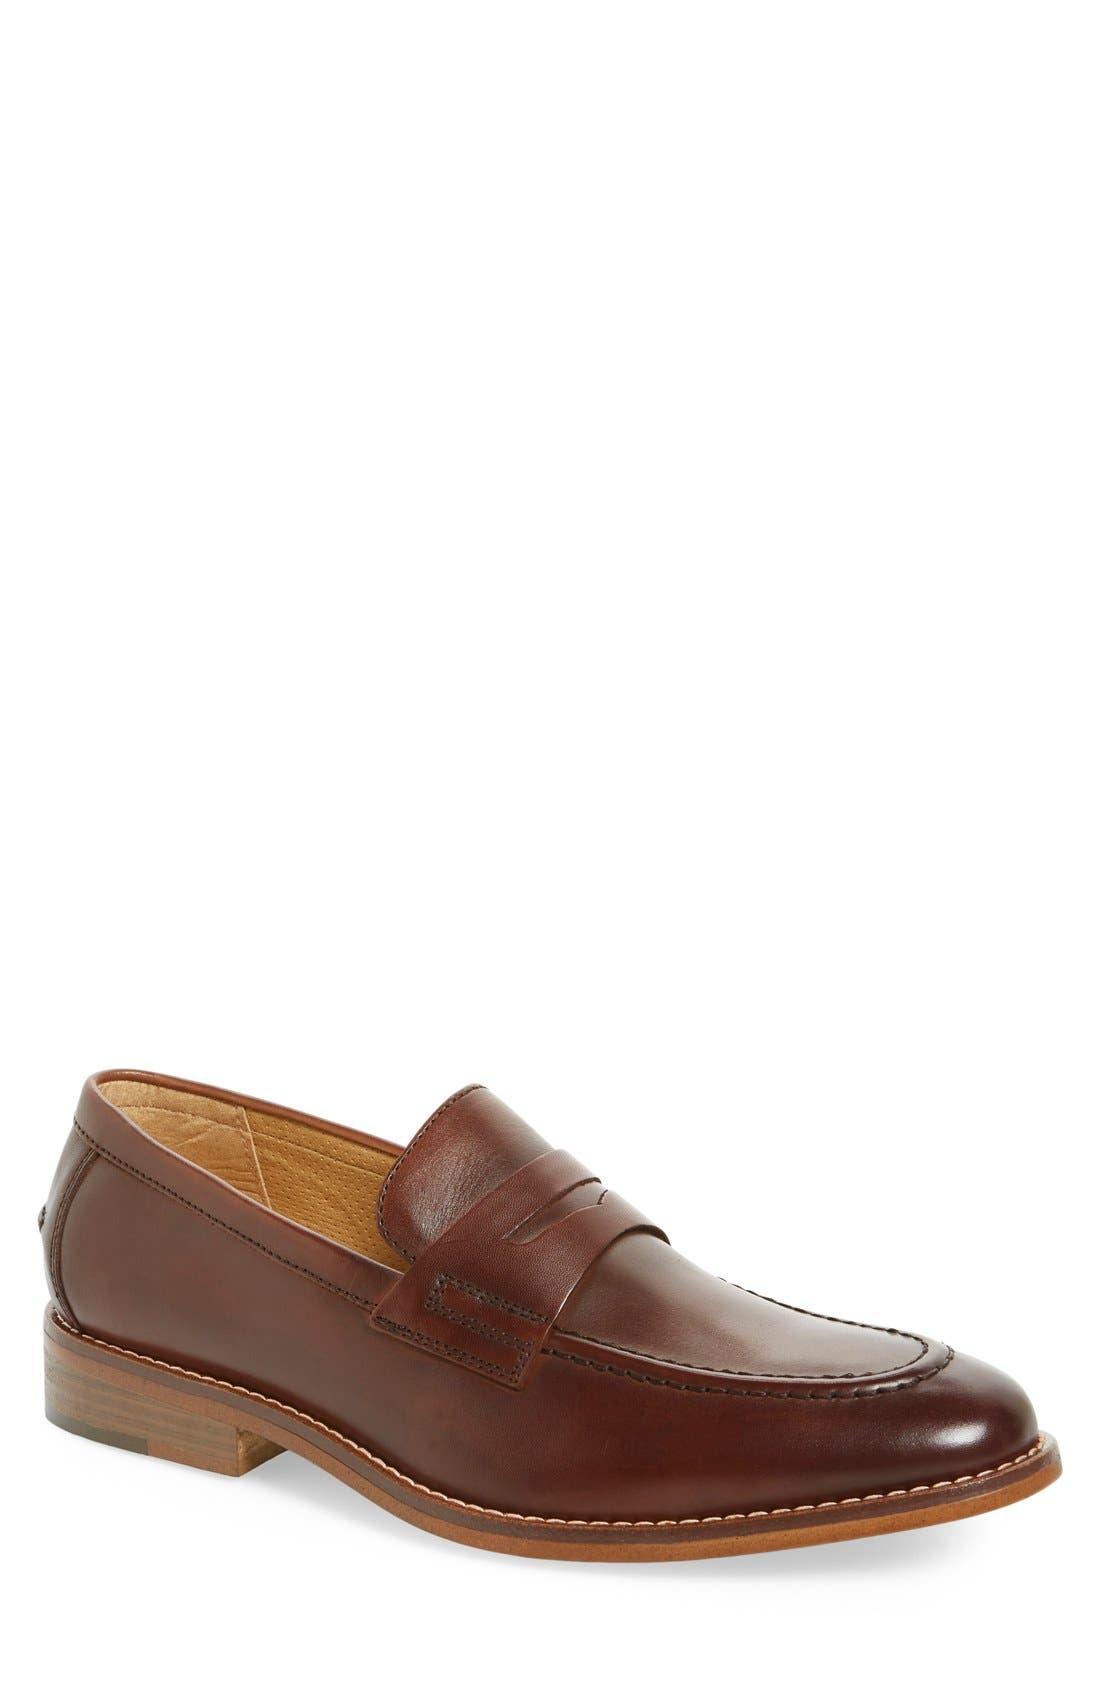 'Conner' Penny Loafer,                         Main,                         color, British Tan Leather